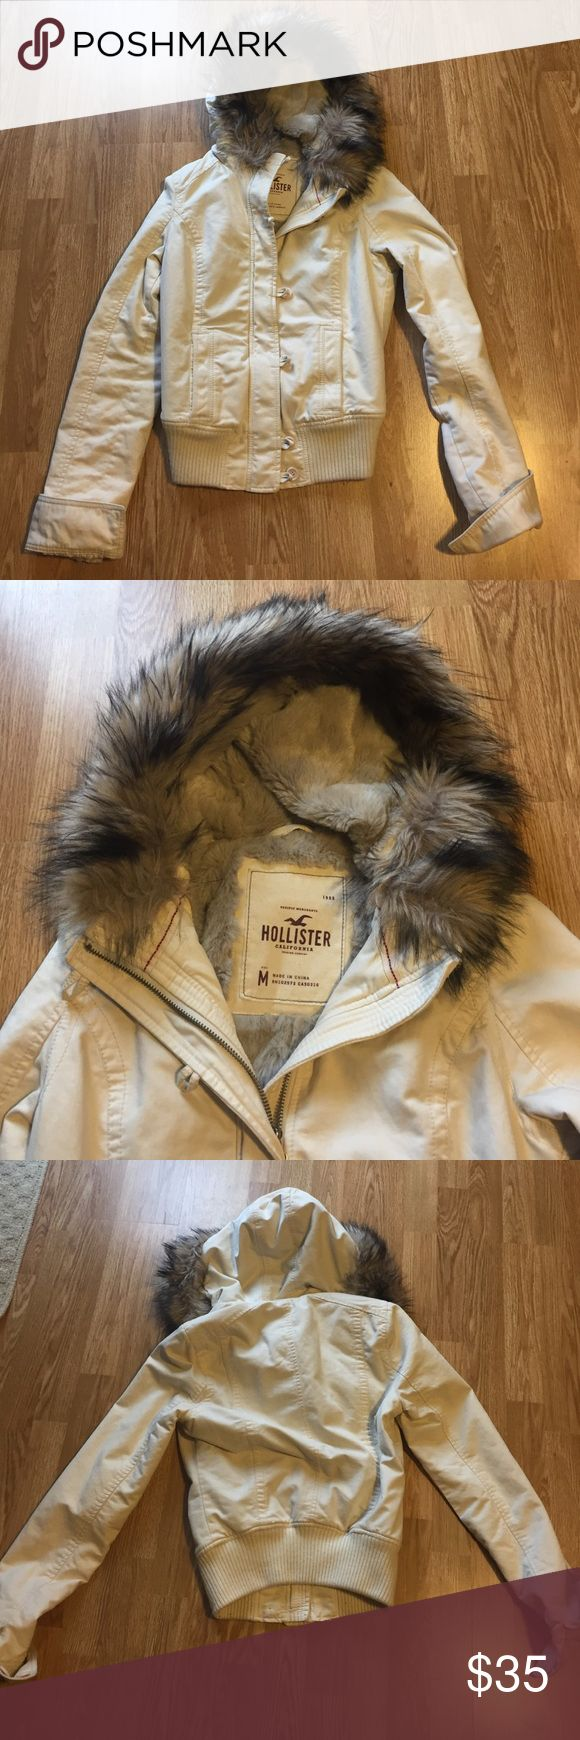 Hollister bomber jacket Women's Hollister bomber jacket, light cream color with grey fur in hood and chest of jacket. Very light wear on end of sleeves but overall in great condition! Hollister Jackets & Coats